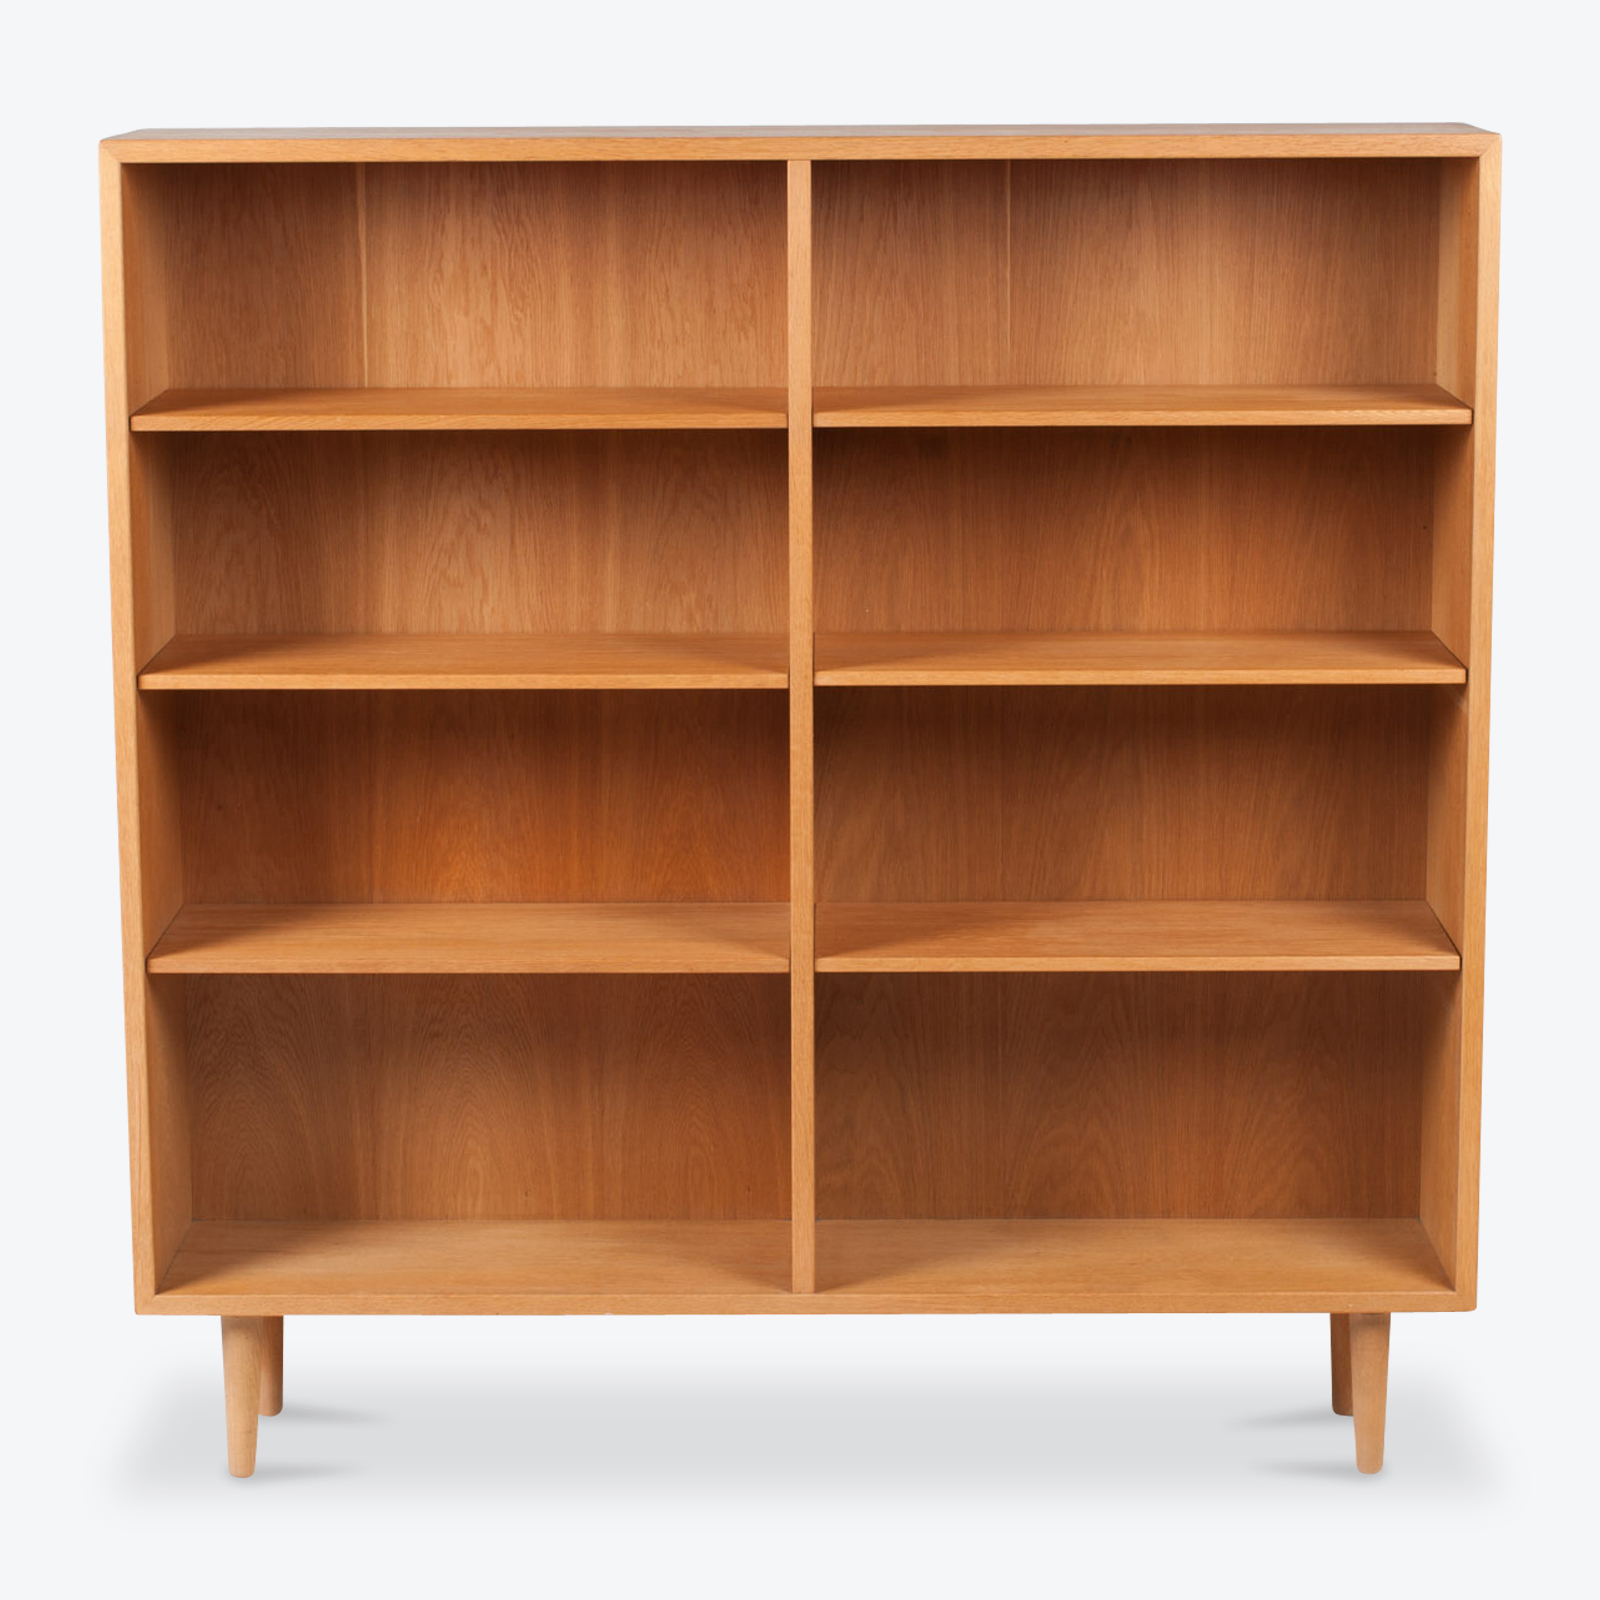 Bookcase By Borge Mogensen In Oak 1960s Denmark 01